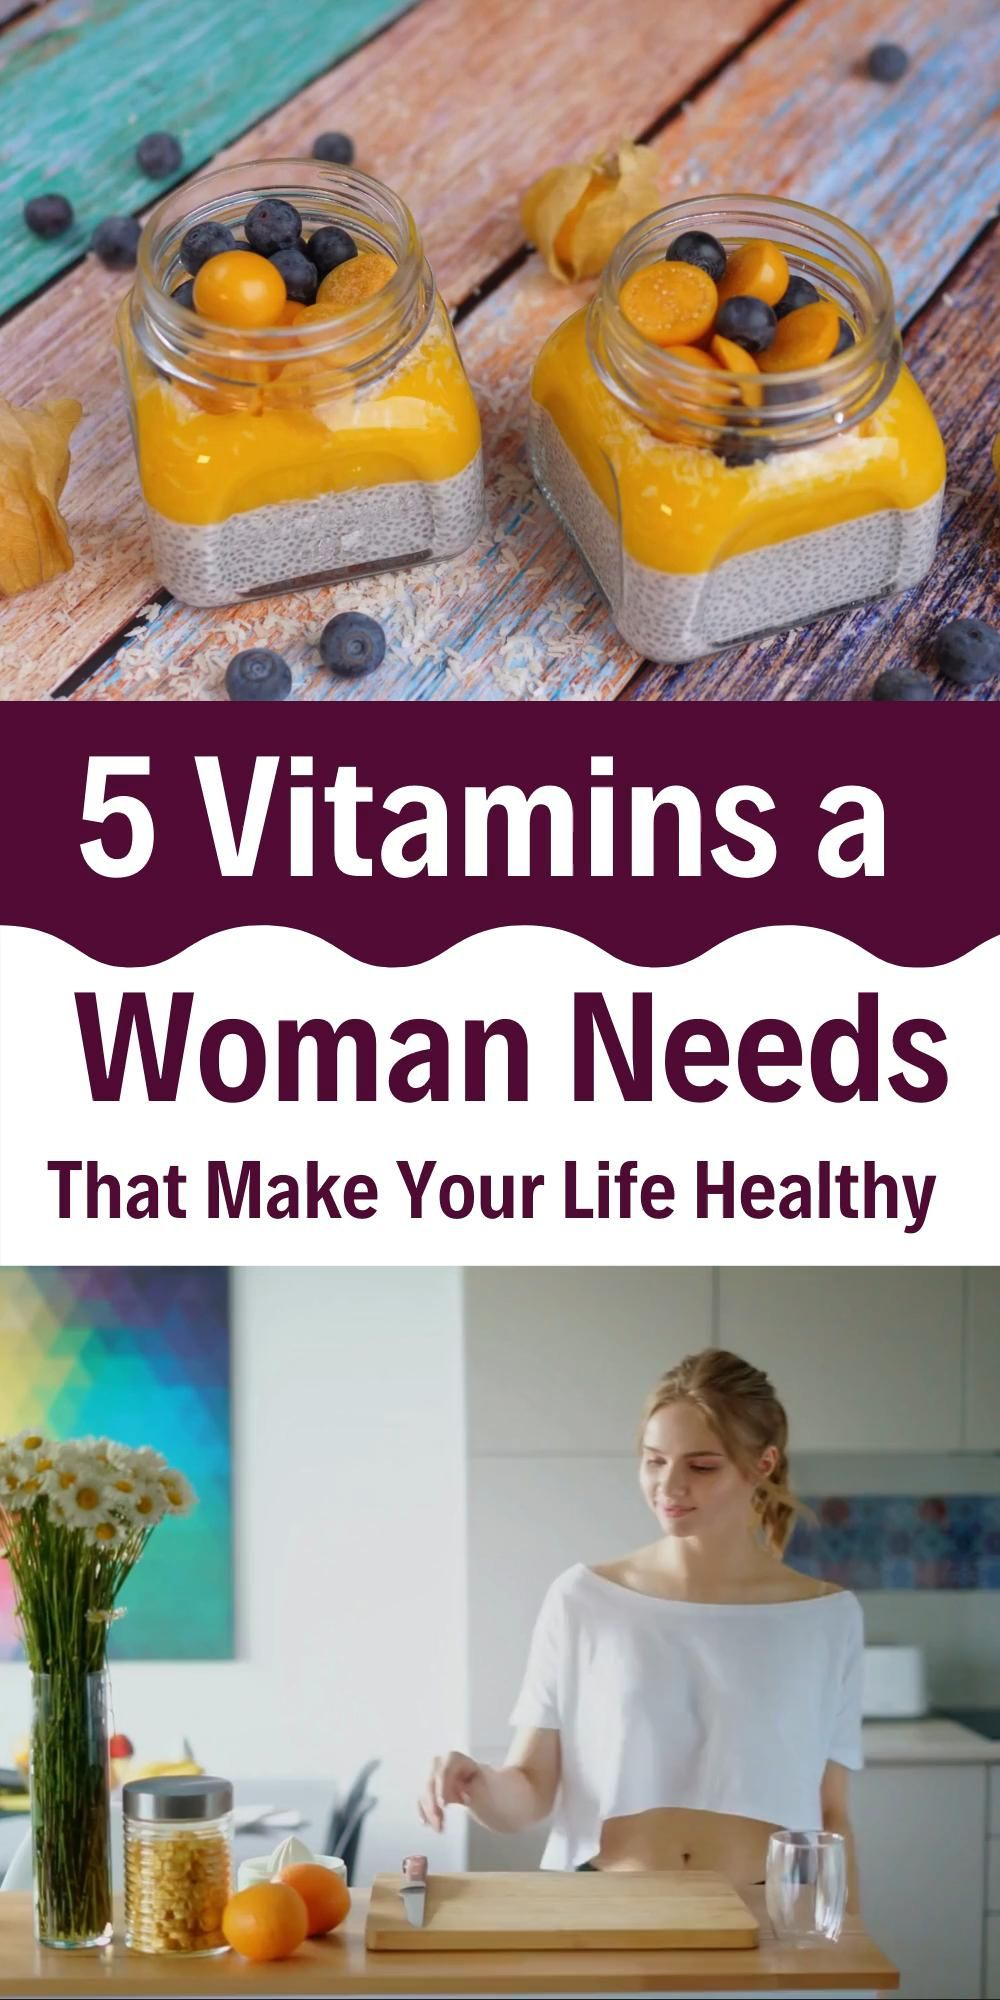 Just a healthy diet is no longer enough to fulfill the demands on you, keep you energetic and on top. So, what are these magic supplements? Read on! We will first enlist the essential vitamins and later talk about vitamins women in particular need as supplements, in addition to their dietary consumption. #womenfitness #healthydietsforwomen #womenhealthandfitness #womennutrition #energyvitaminsforwomen #vitaminsforweightloss